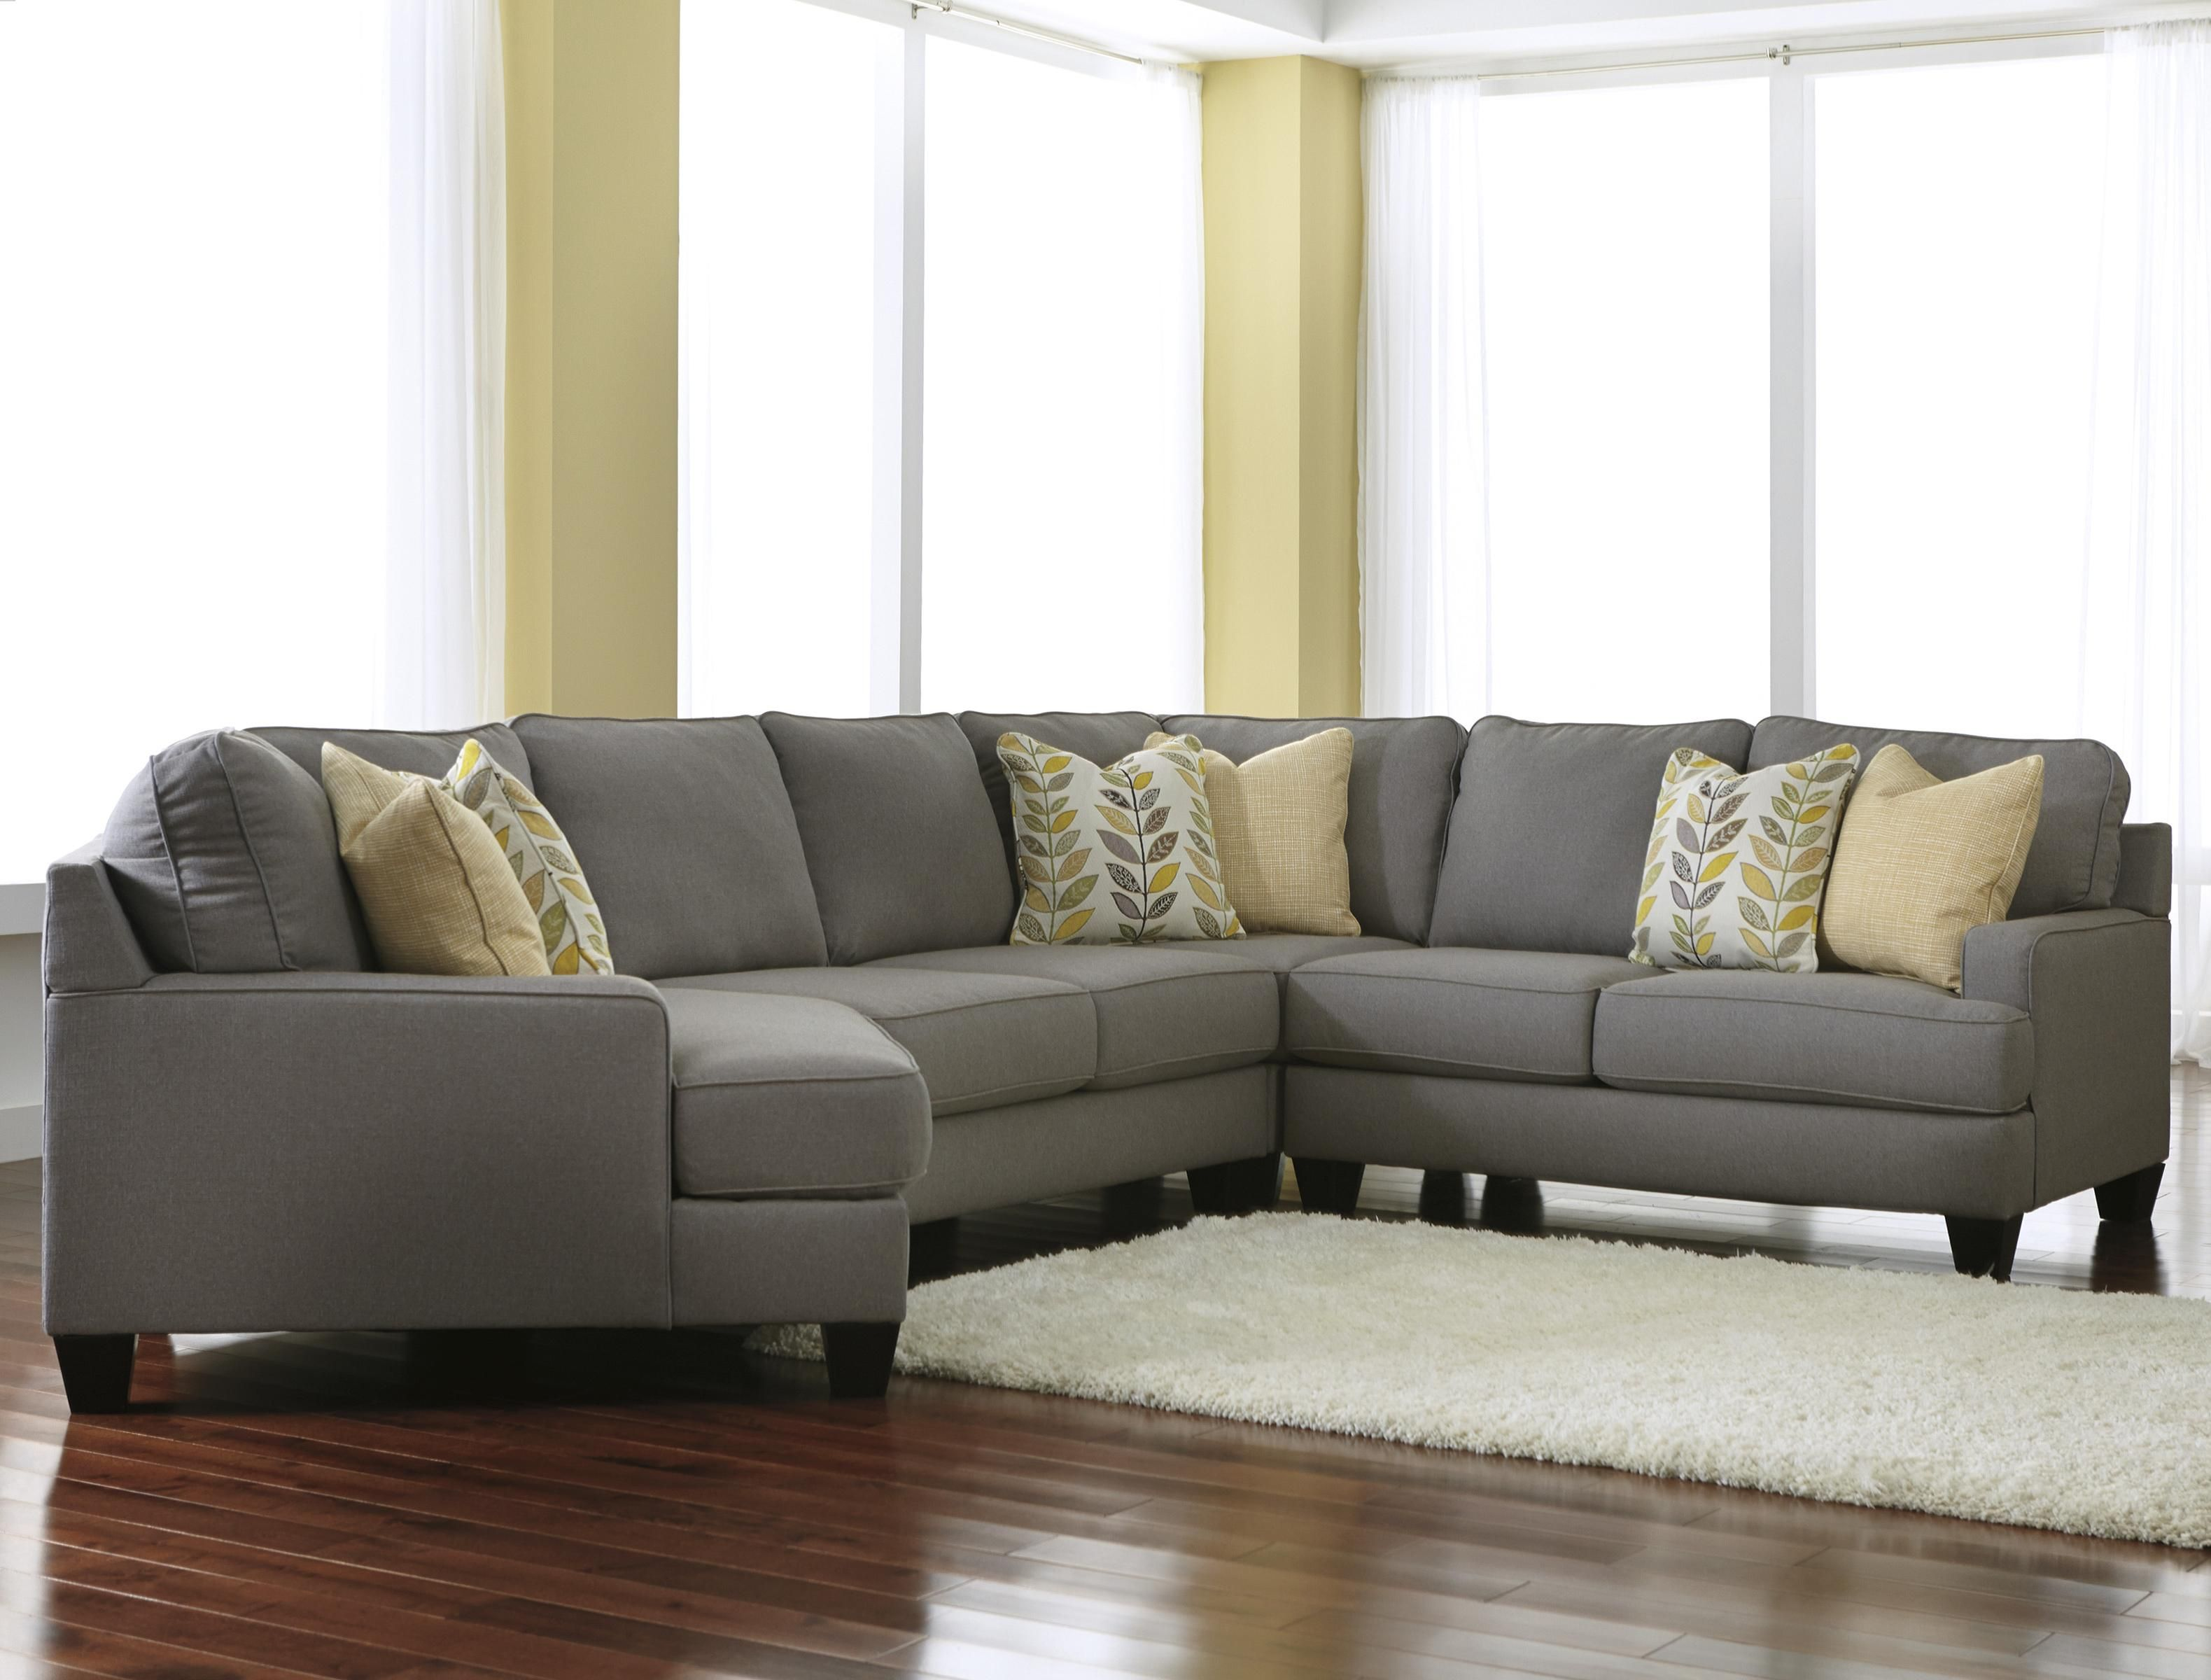 Couch with cuddle for living room dark grey color